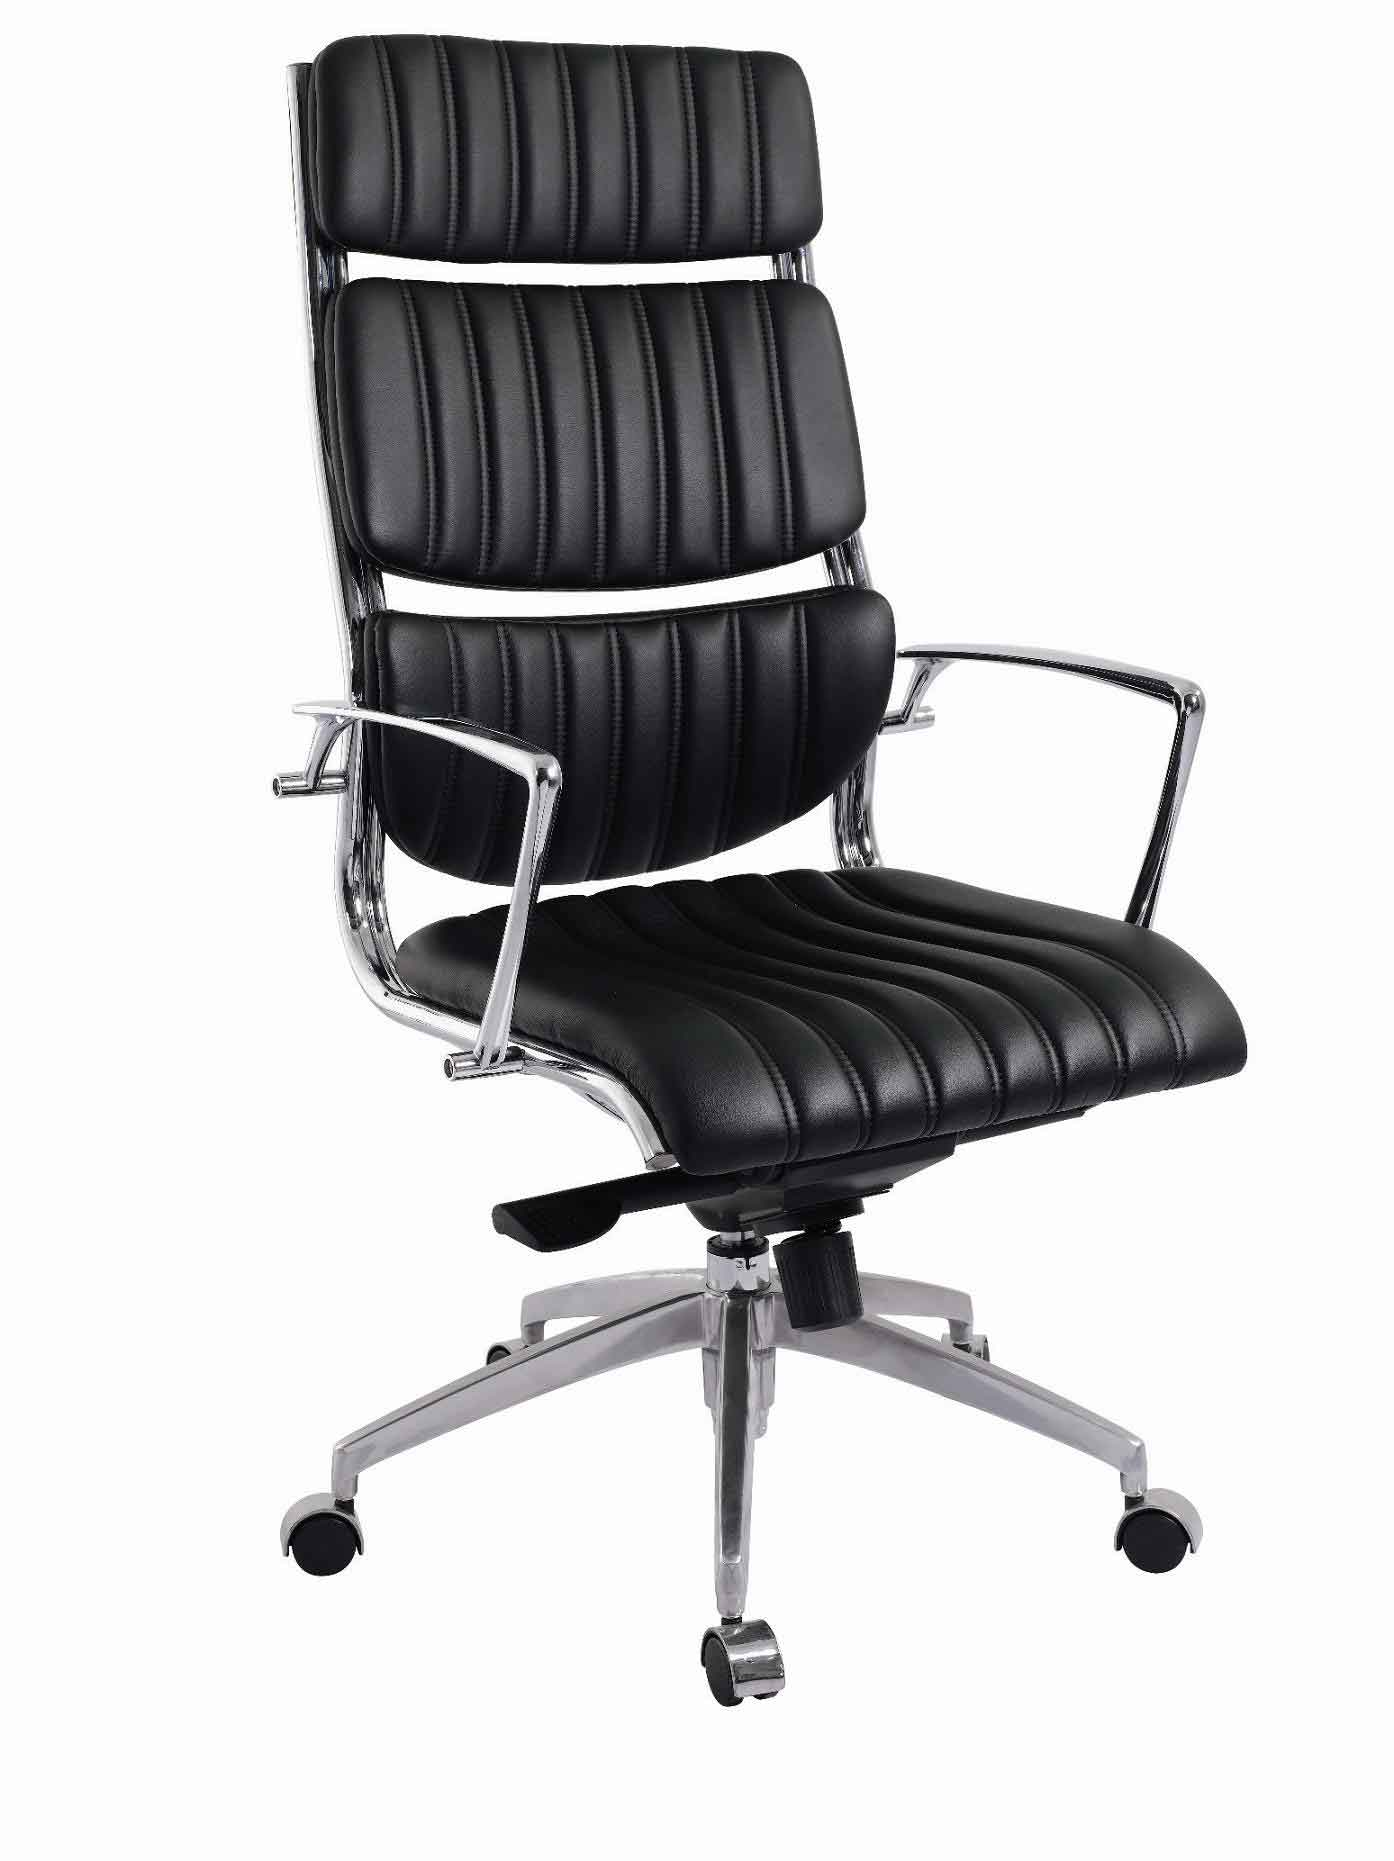 Armor High Back Stylish Office Chairs in Black